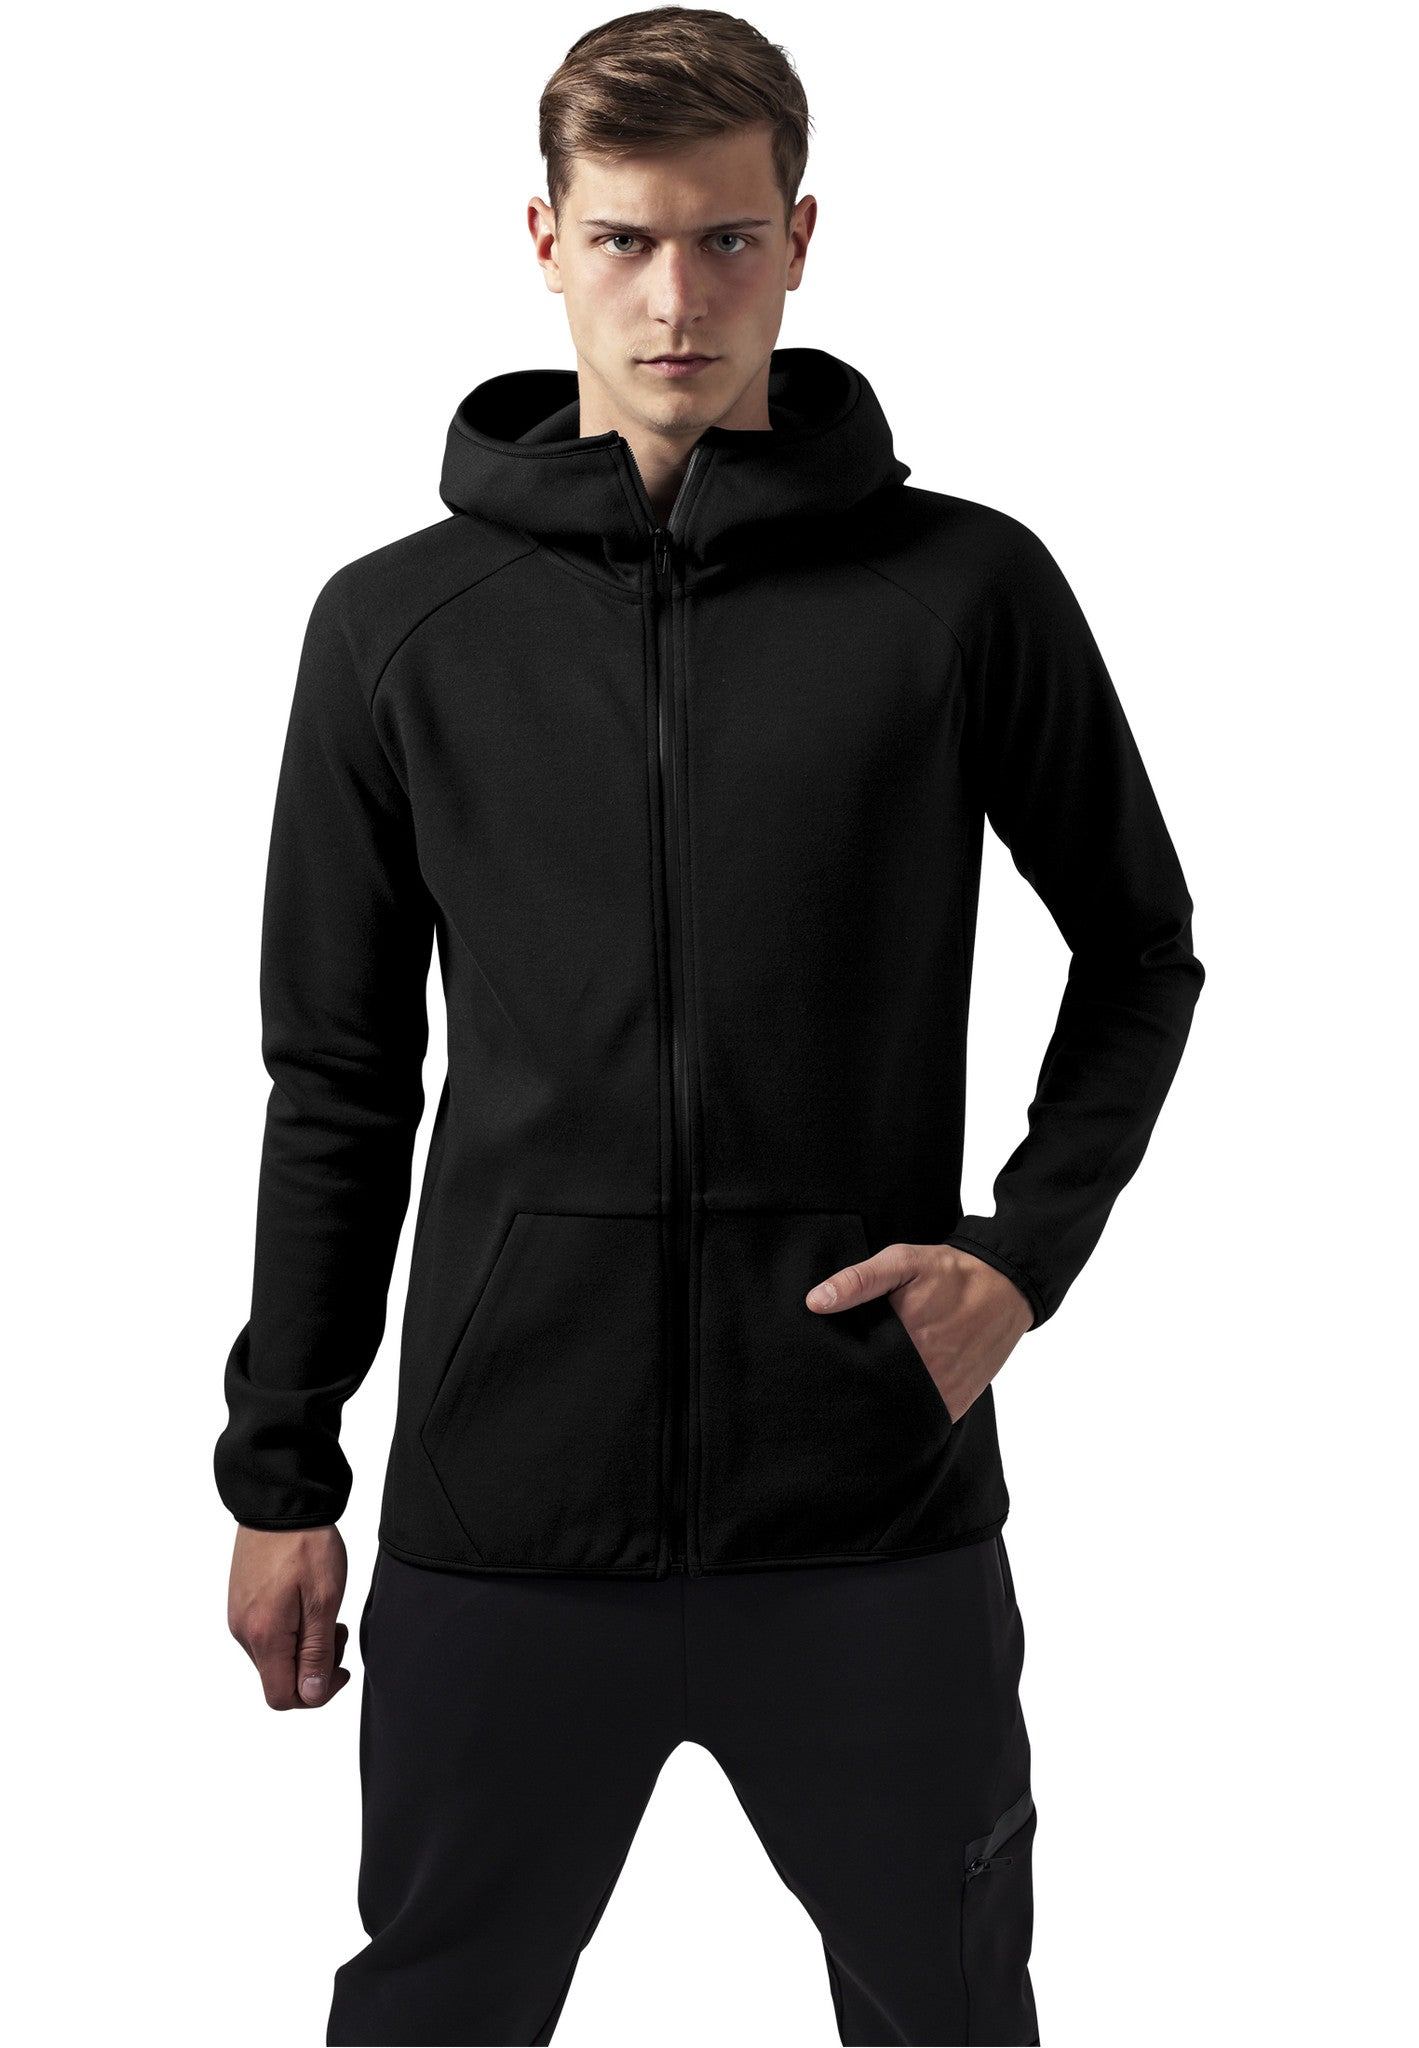 Athletic High Neck Interlock Zip Hoody TB1417 Black